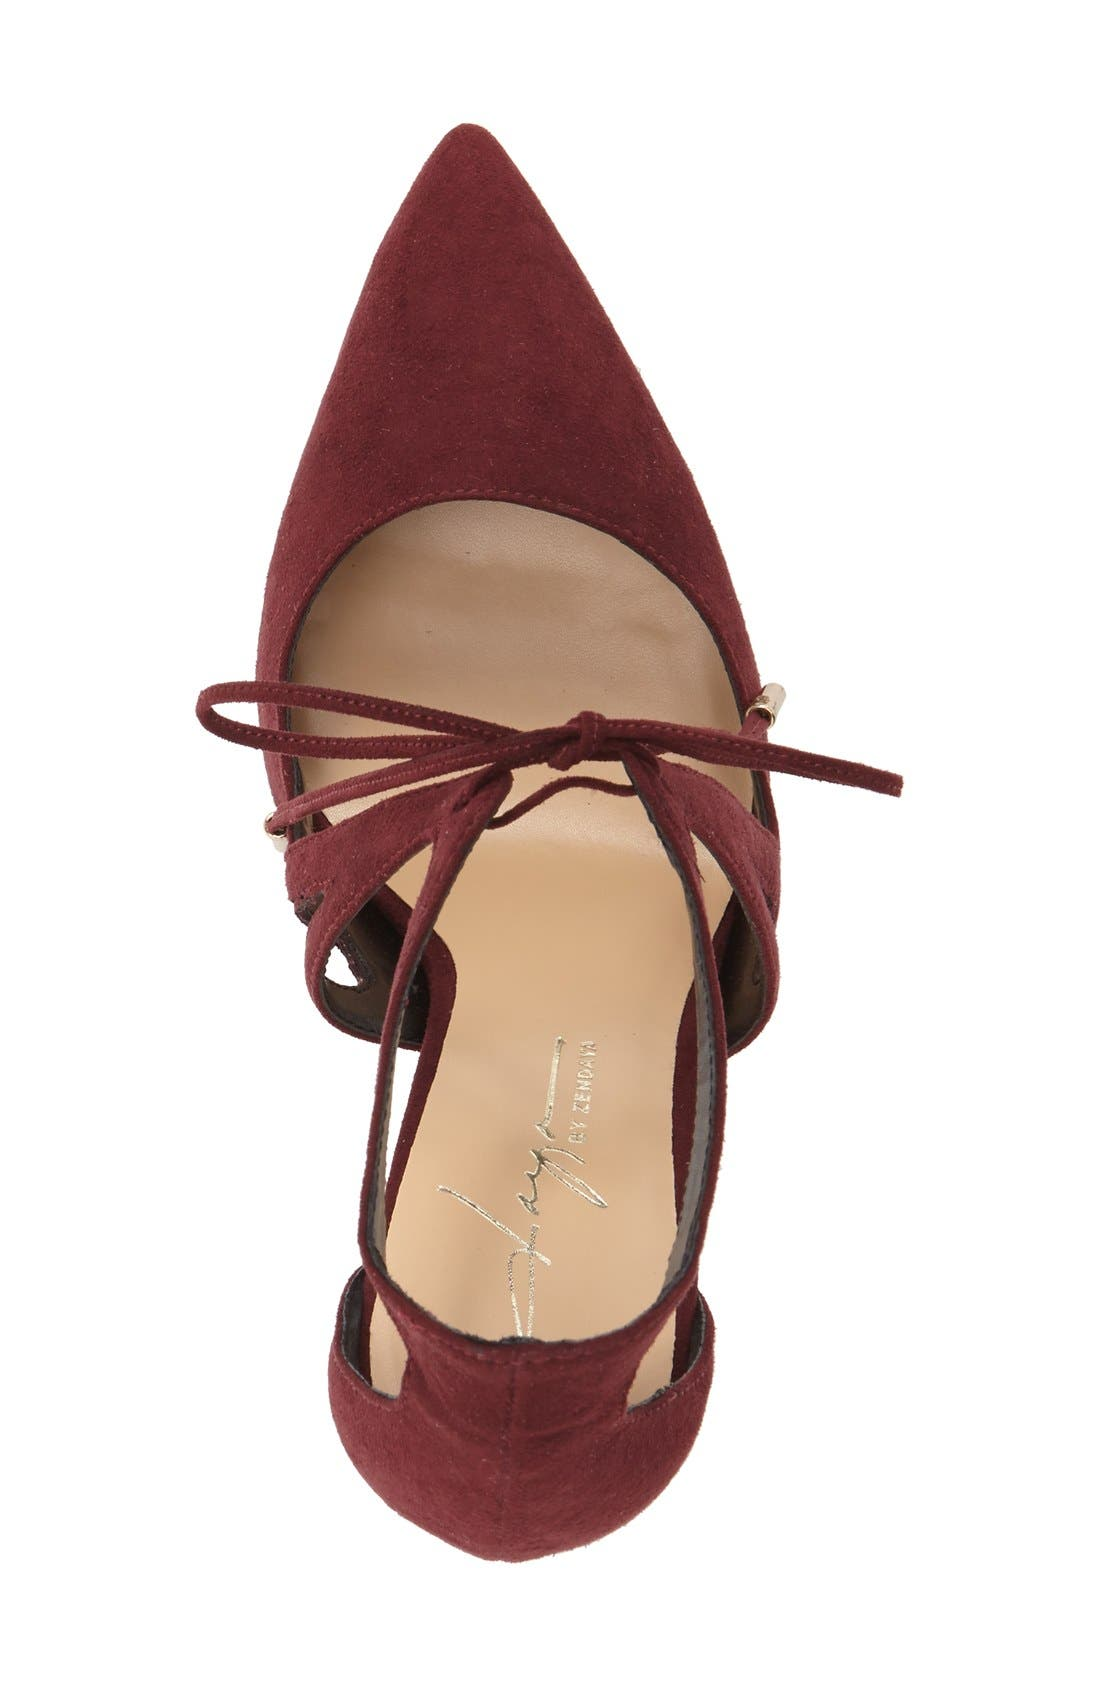 by Zendaya 'Aaron' Pointy Toe Pump,                             Alternate thumbnail 4, color,                             939